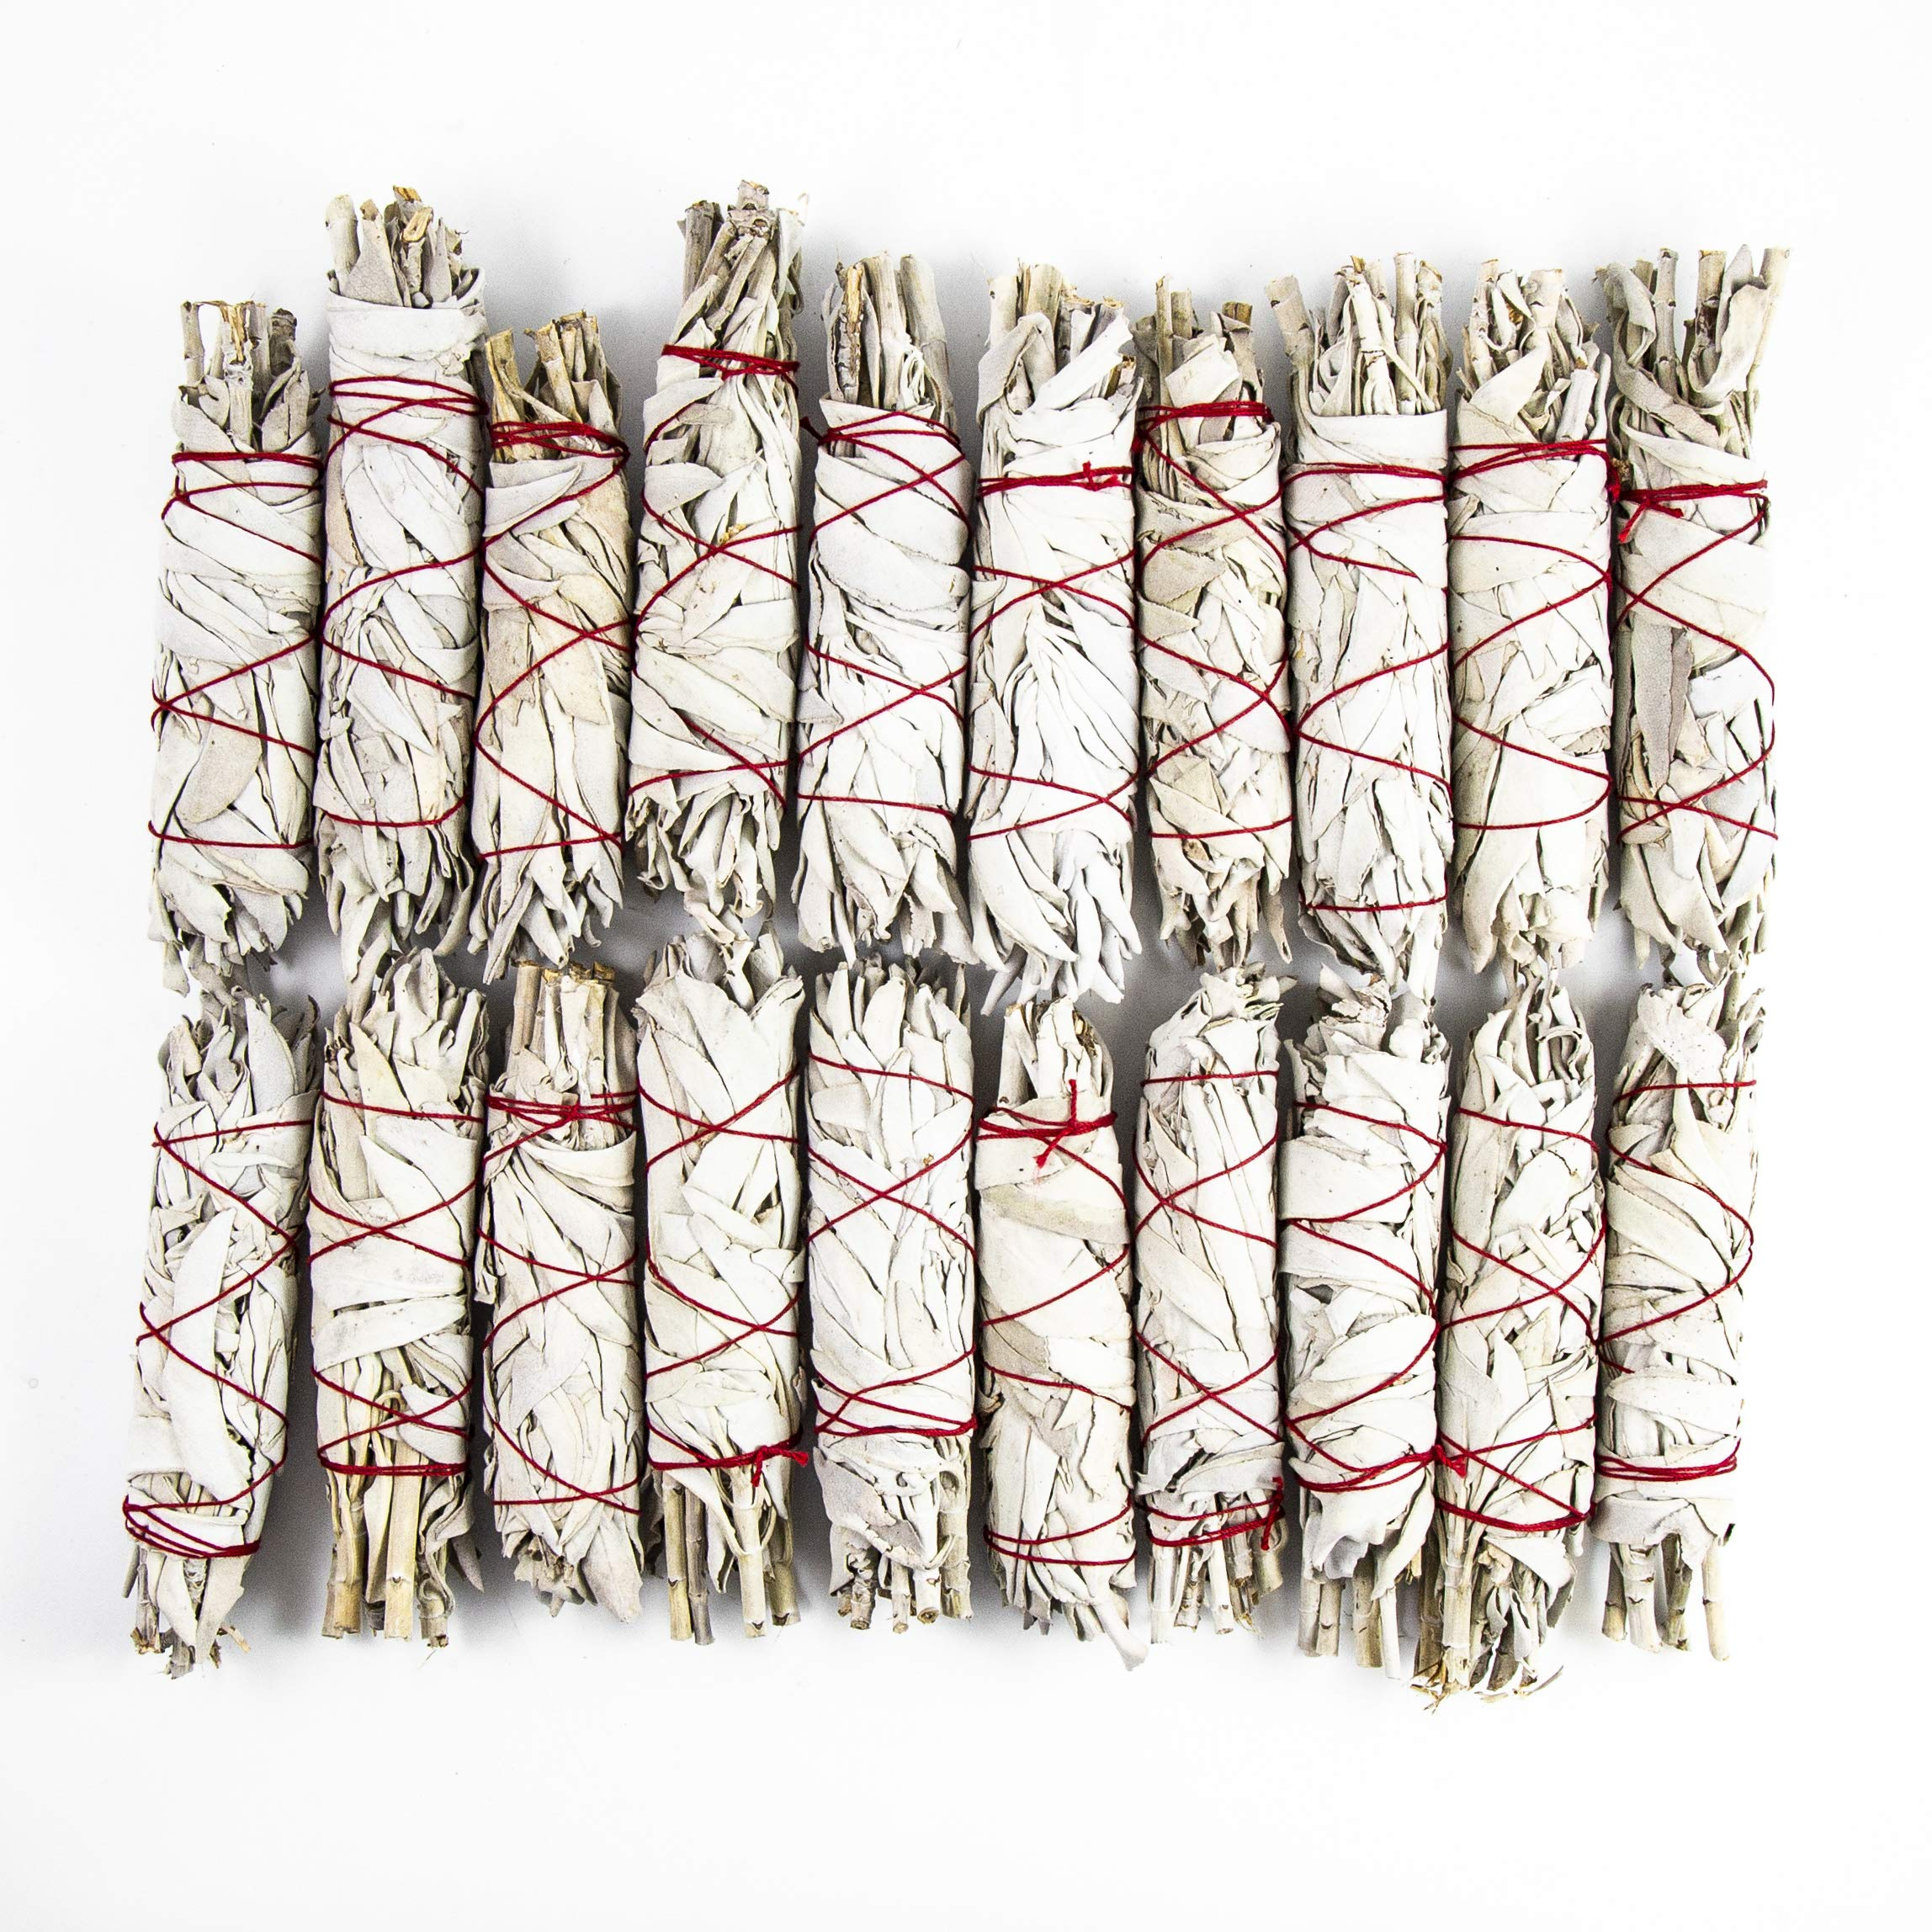 Beverly Oaks California White Sage 4'' Smudge Stick, Perfect for Smudging, Meditation, Protection and Incense, 20 Pack by Beverly Oaks (Image #2)